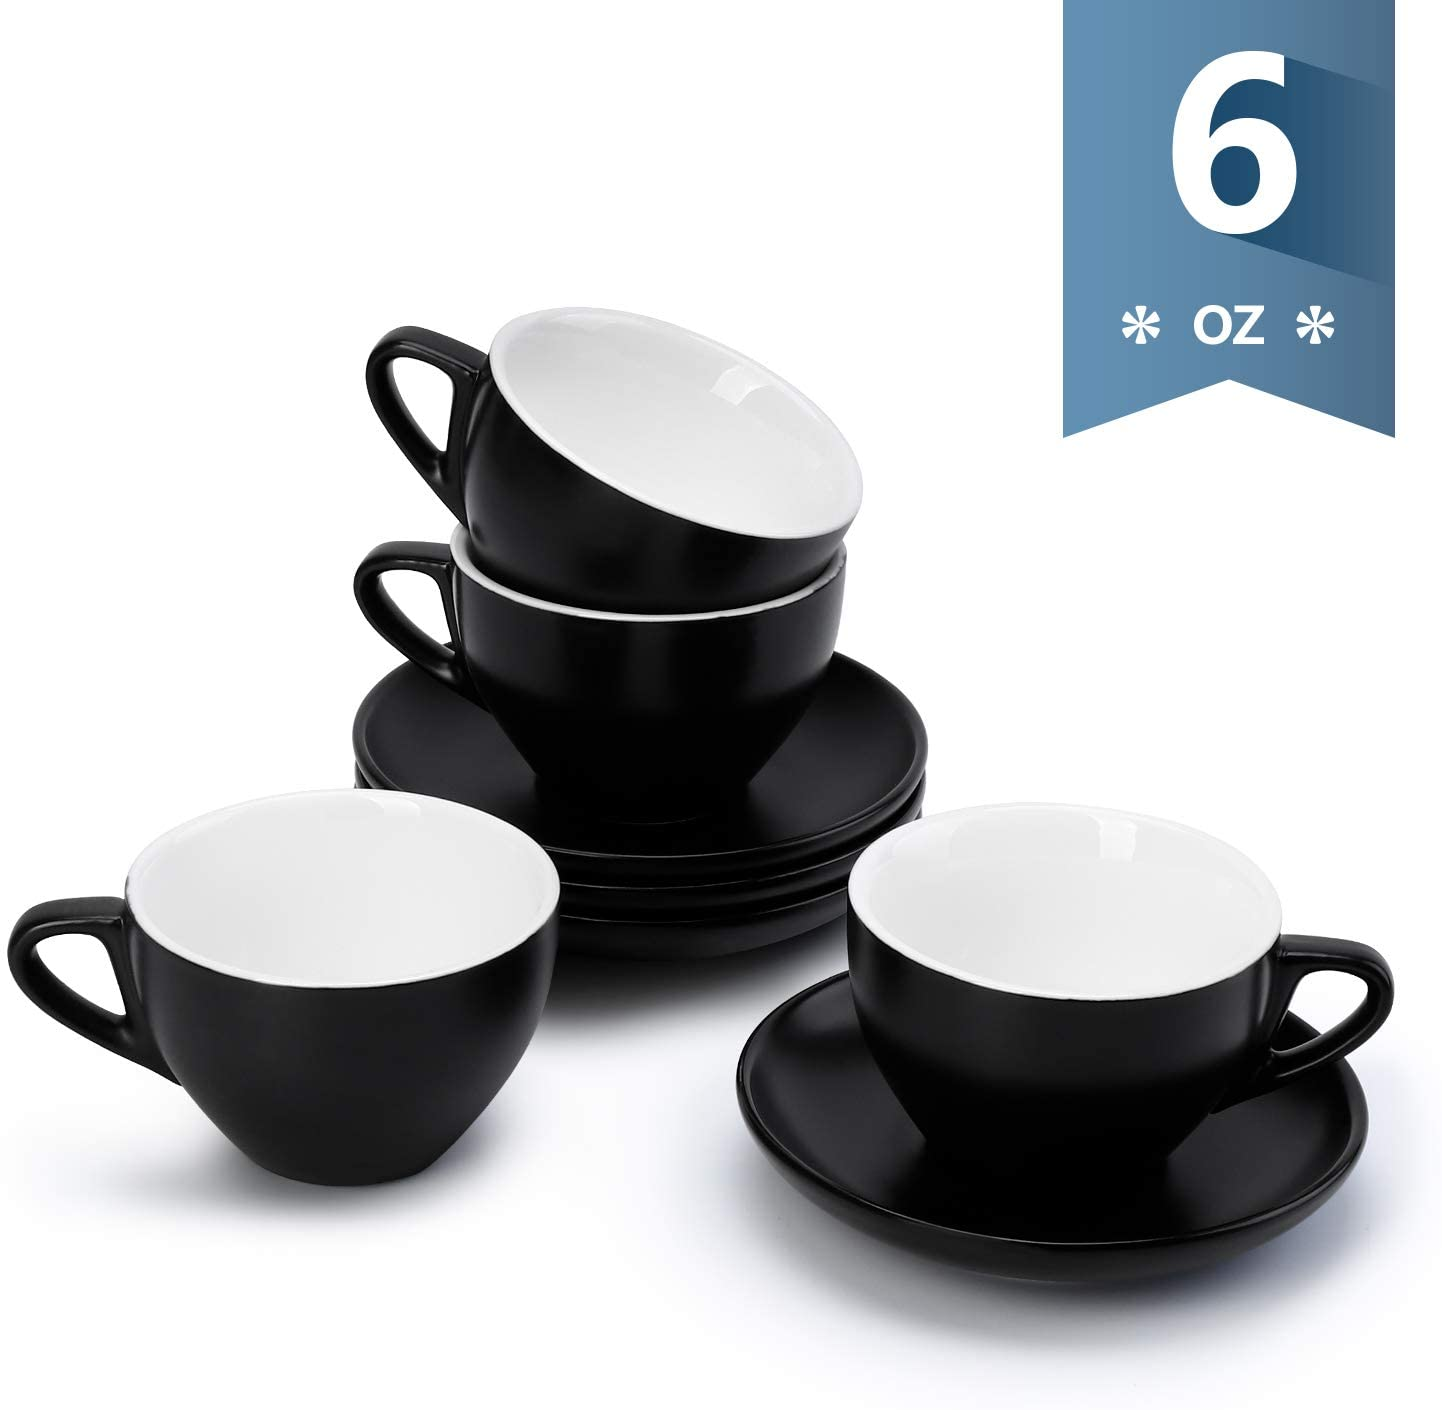 Sweese 403.114 Cappuccino Cup and Saucer Set